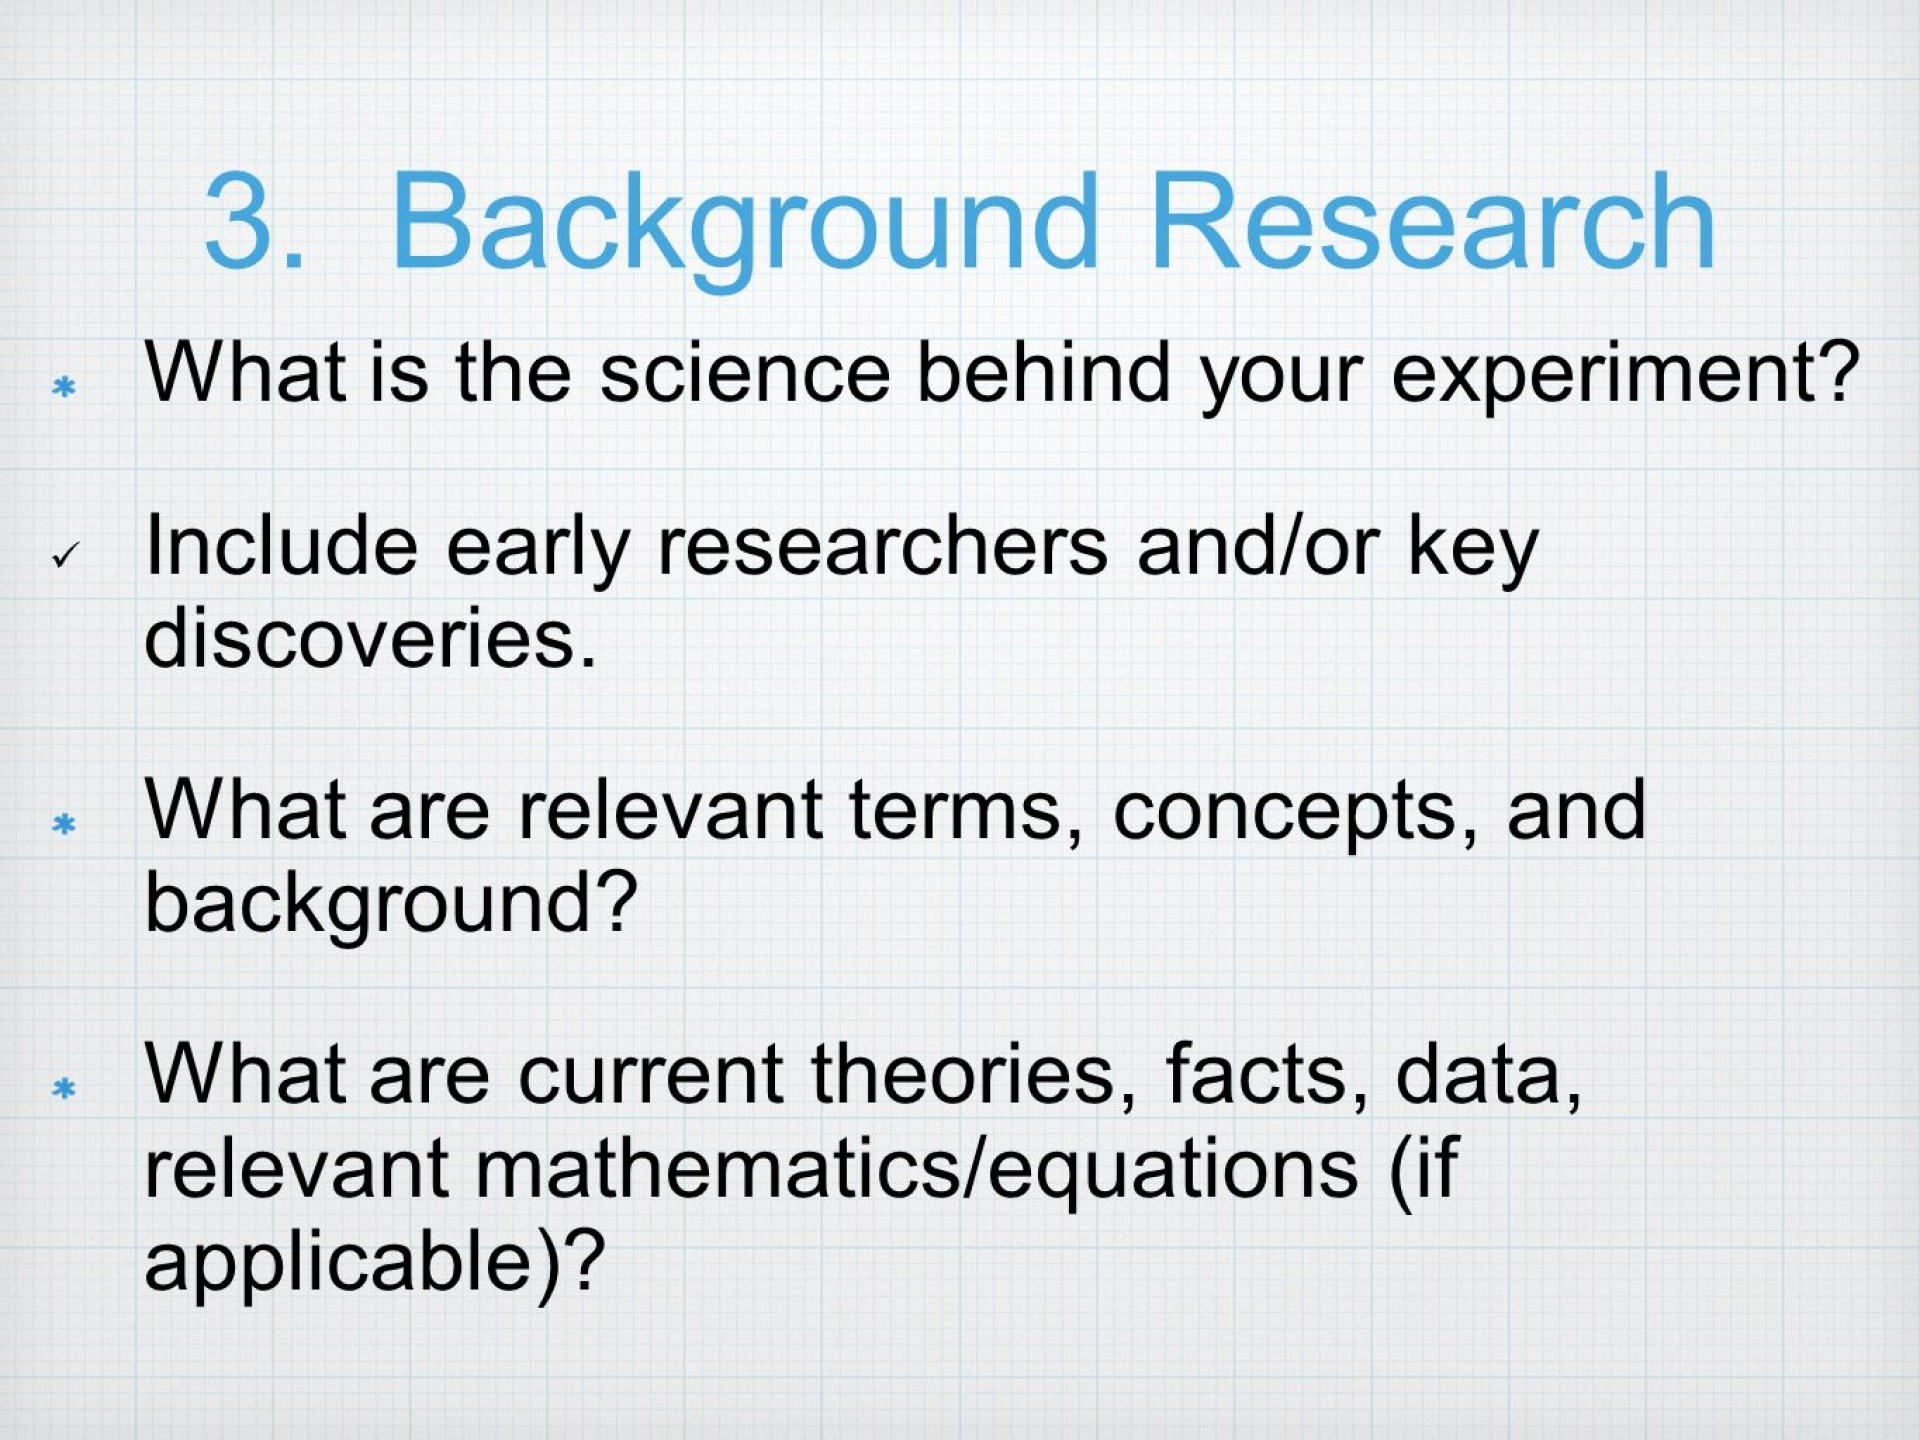 001 Backgroundresearchwhatisthesciencebehindyourexperiment Research Paper Background Example For Science Fantastic Fair 1920